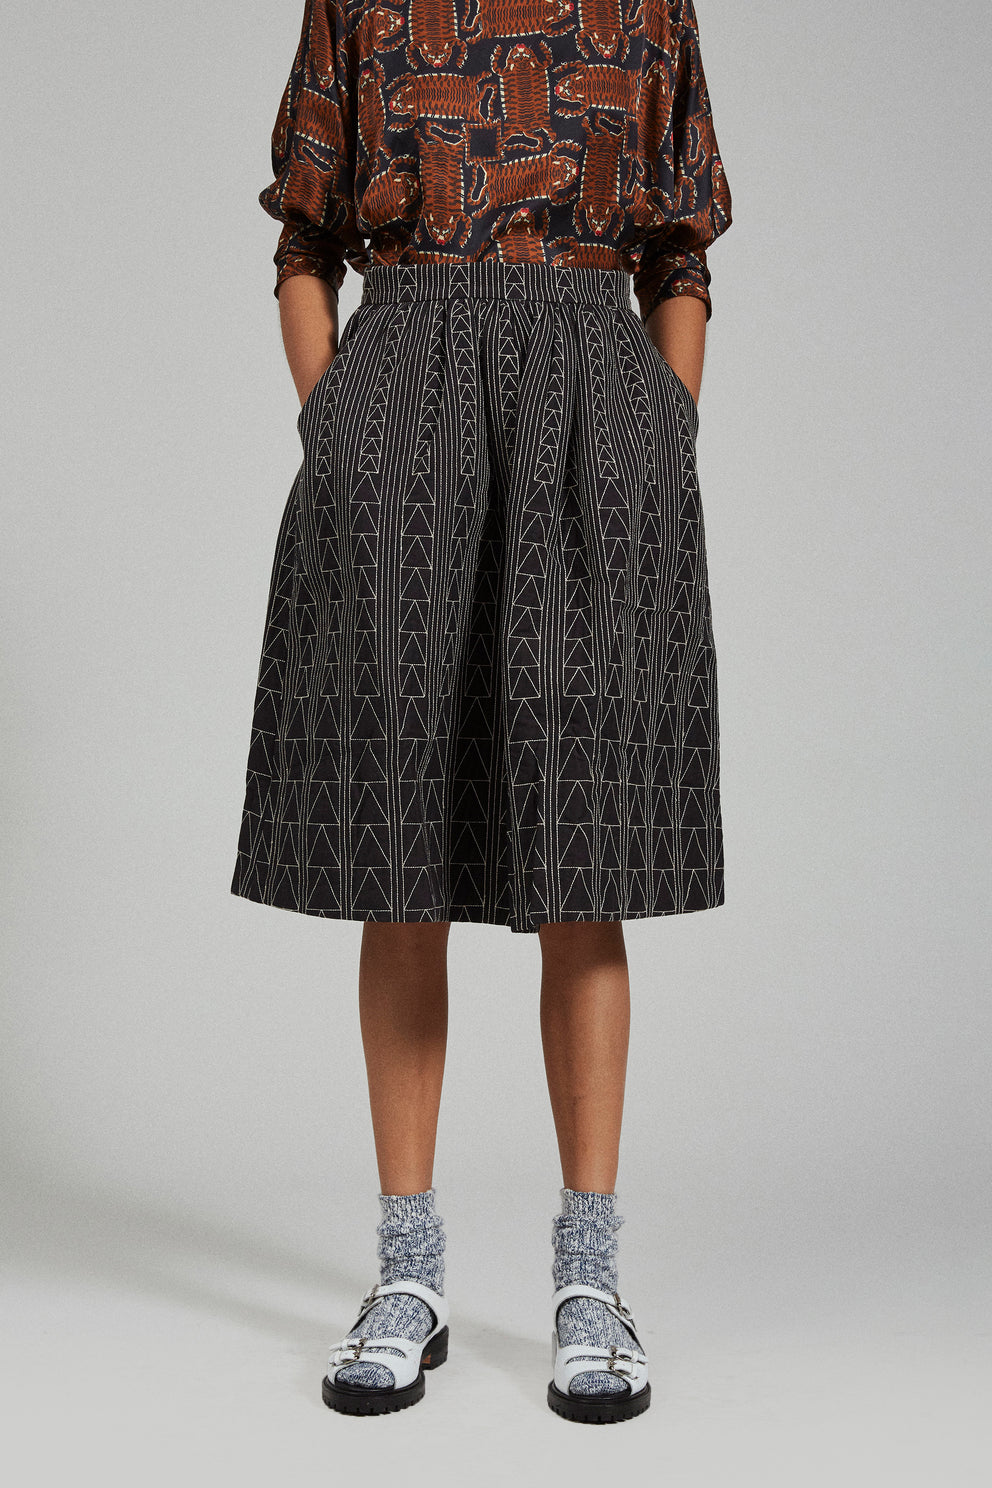 Beacon Skirt